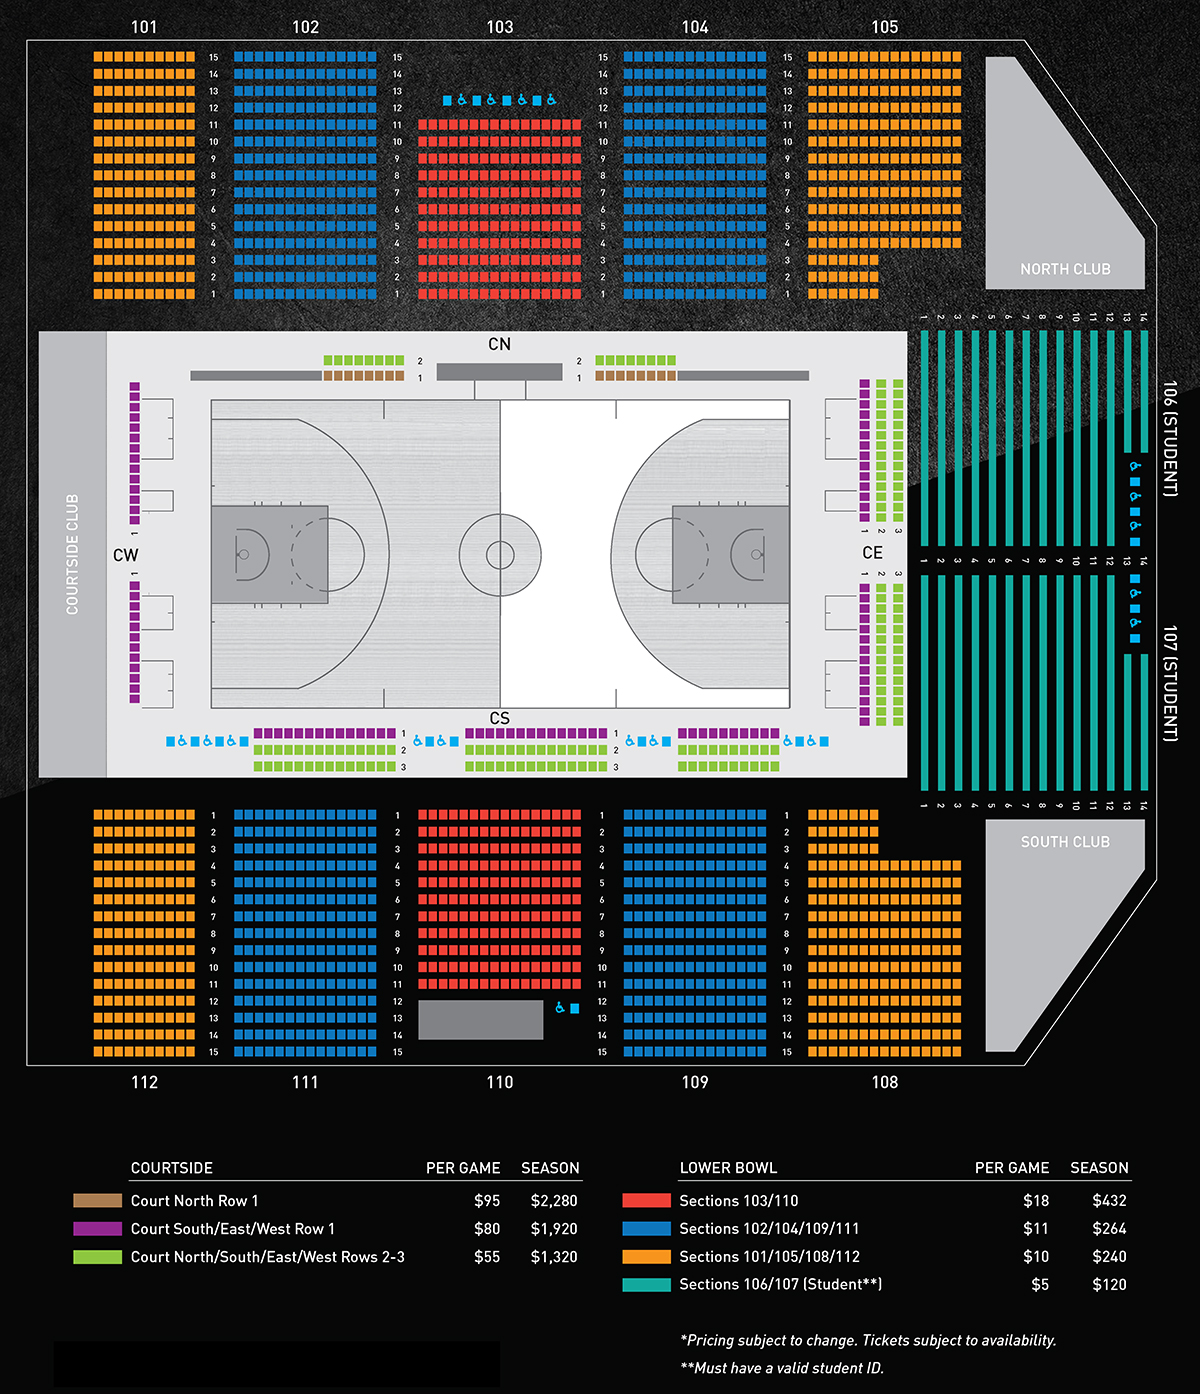 Seating and Pricing chart